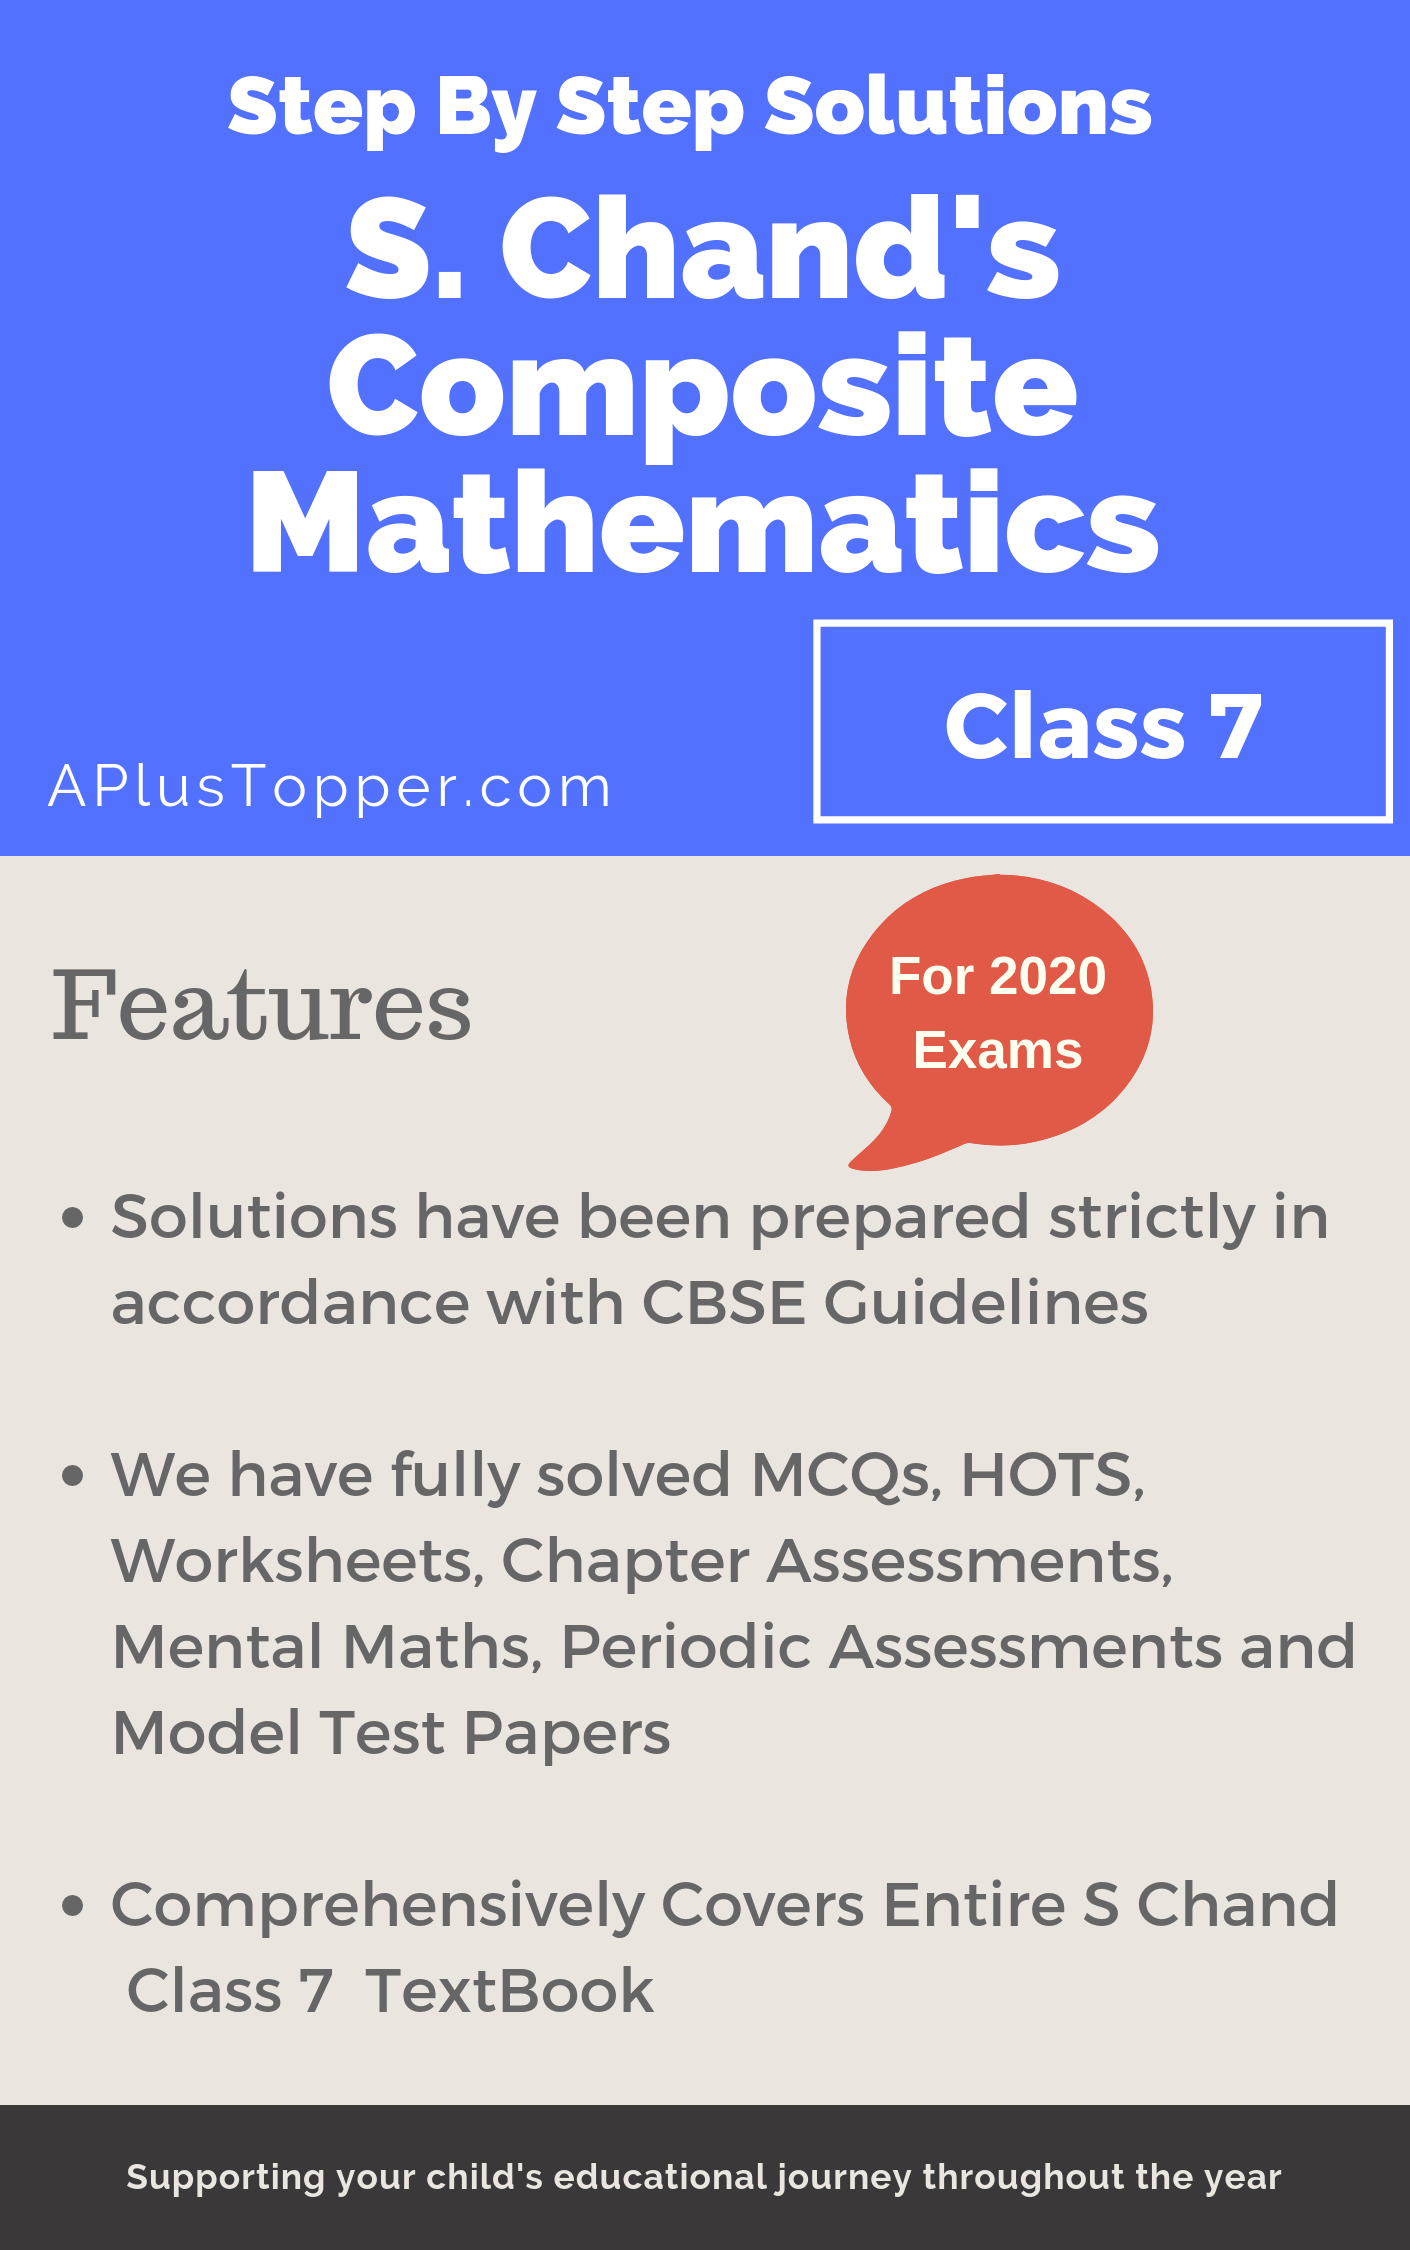 S Chand Class 7 Composite Mathematics Solutions - Learn CBSE